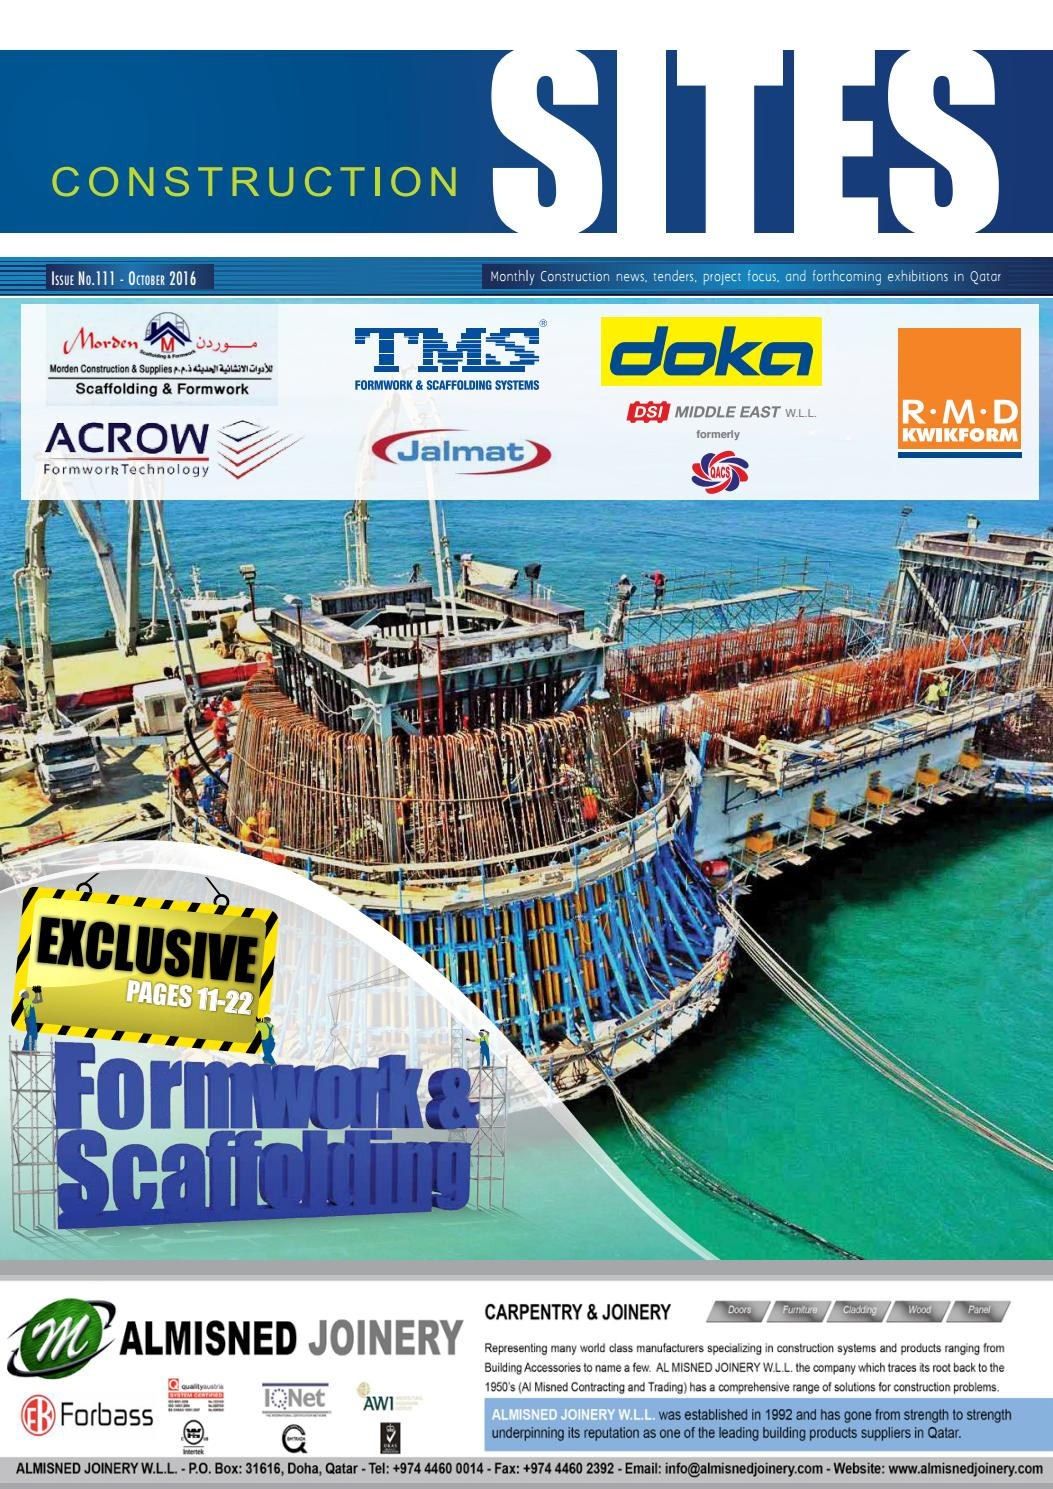 Construction Sites | October Issue no  111 by Qatar